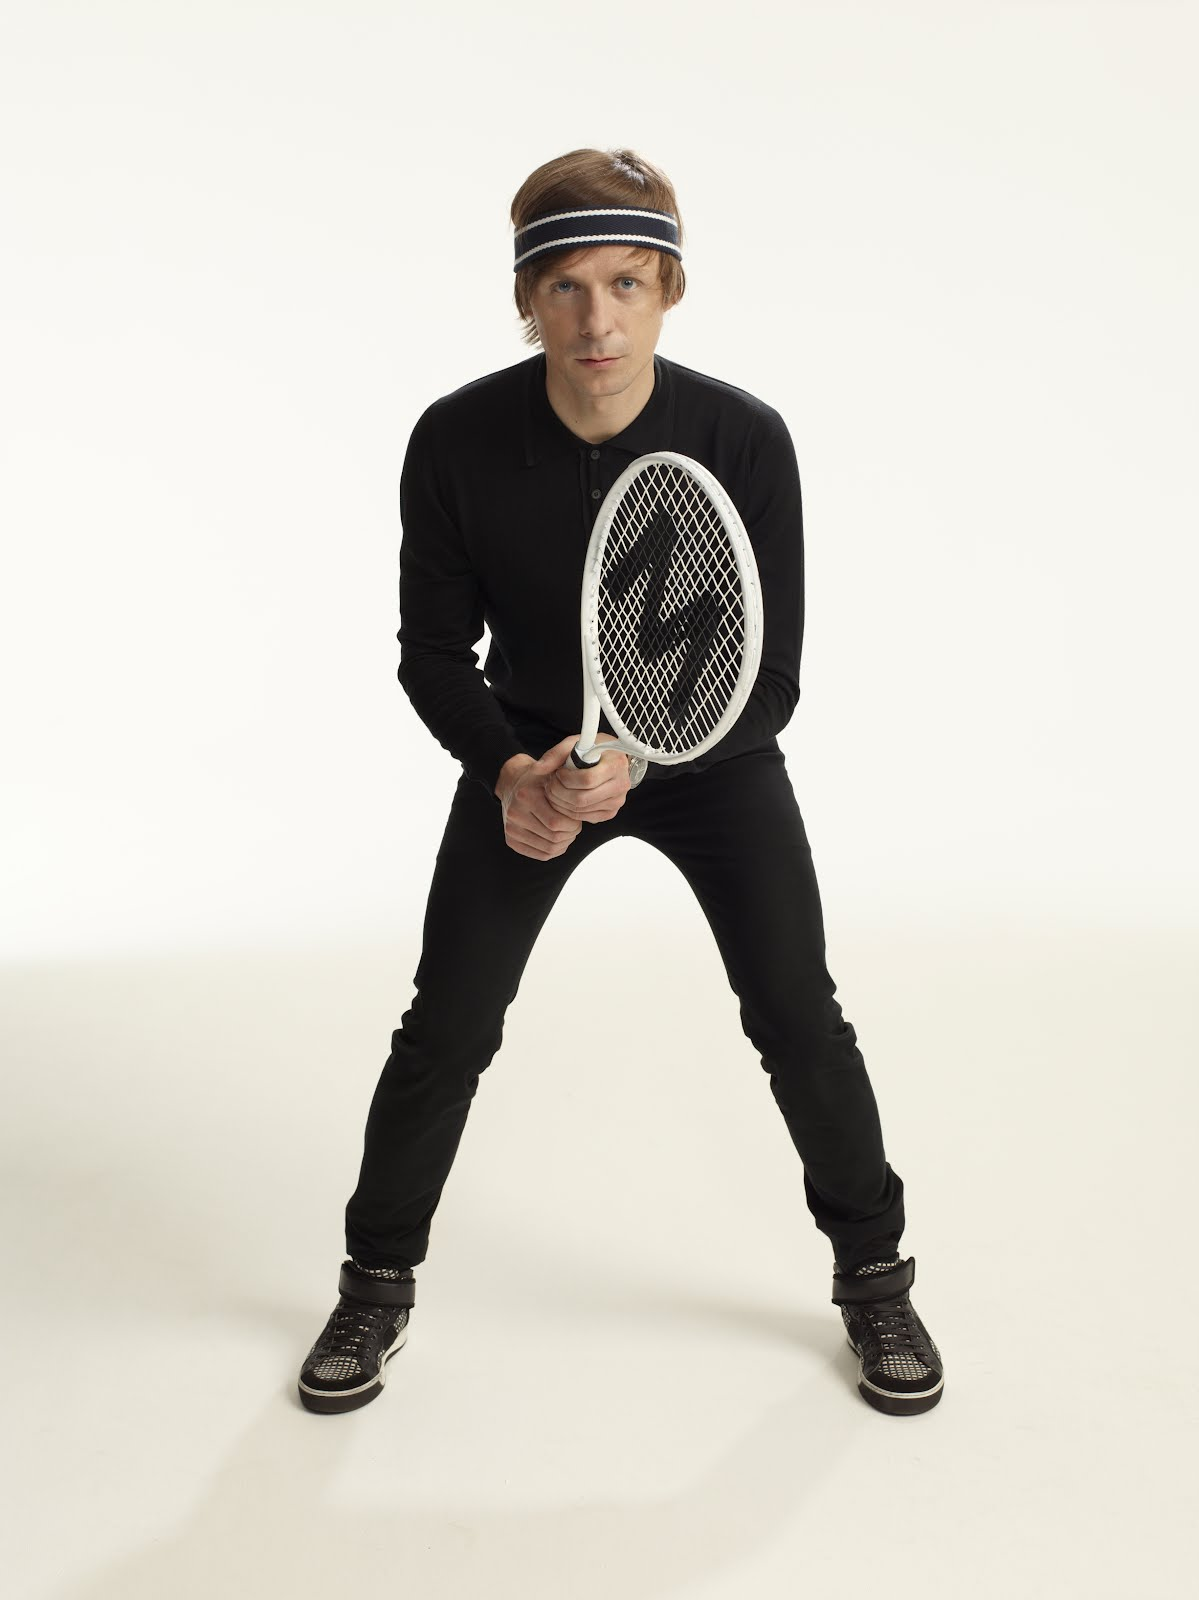 Martin Picandet Martinsolveig-press-shot-2